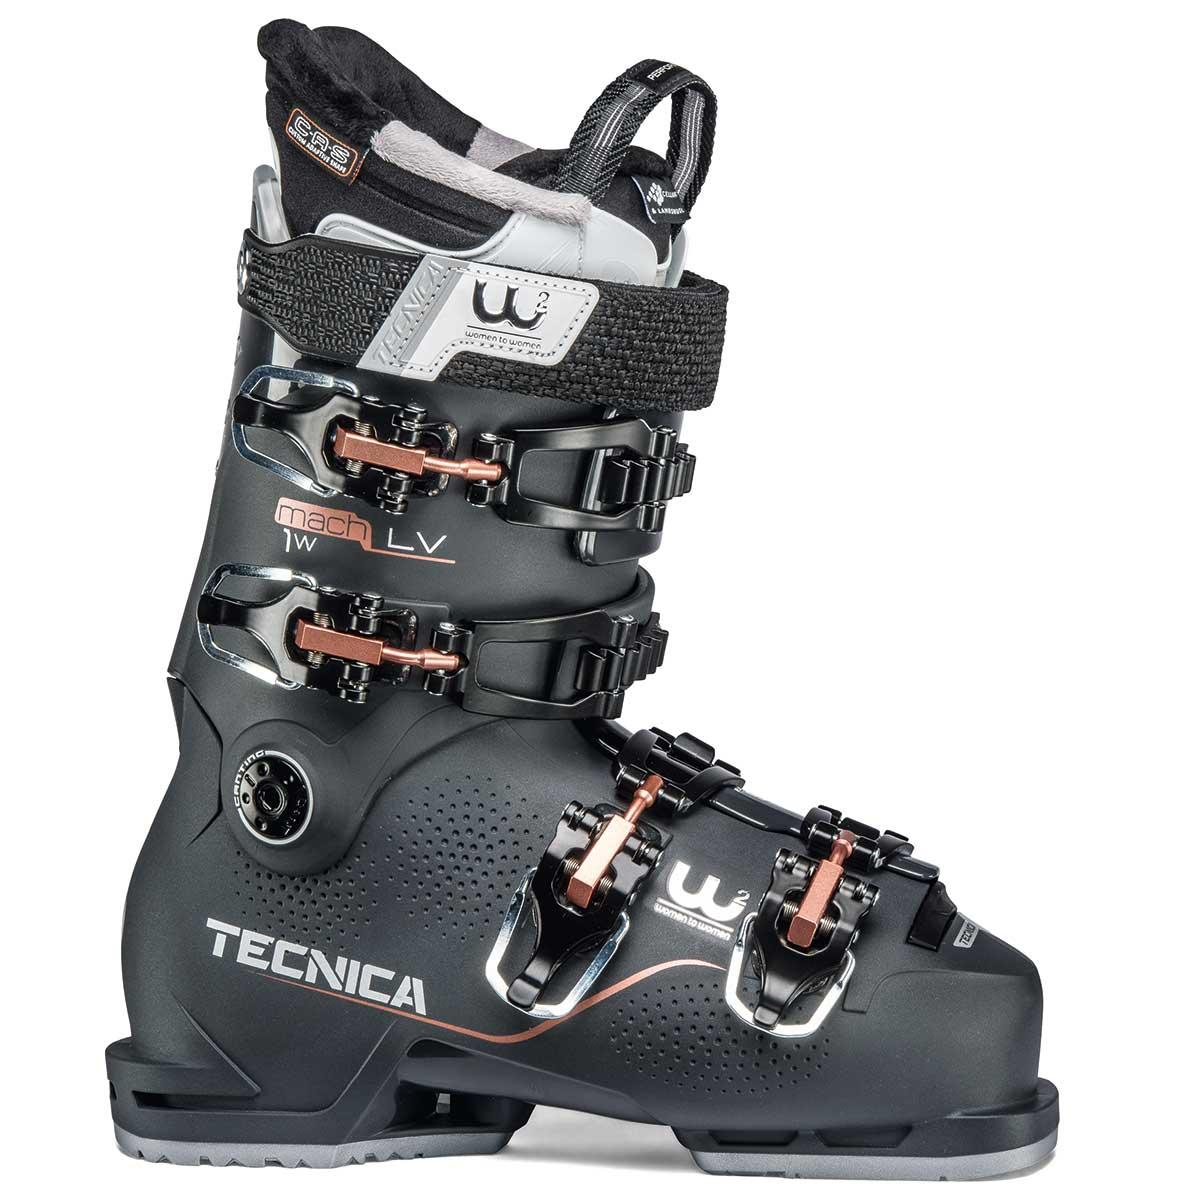 Tecnica Mach1 LV 95 W ski boot in graphite